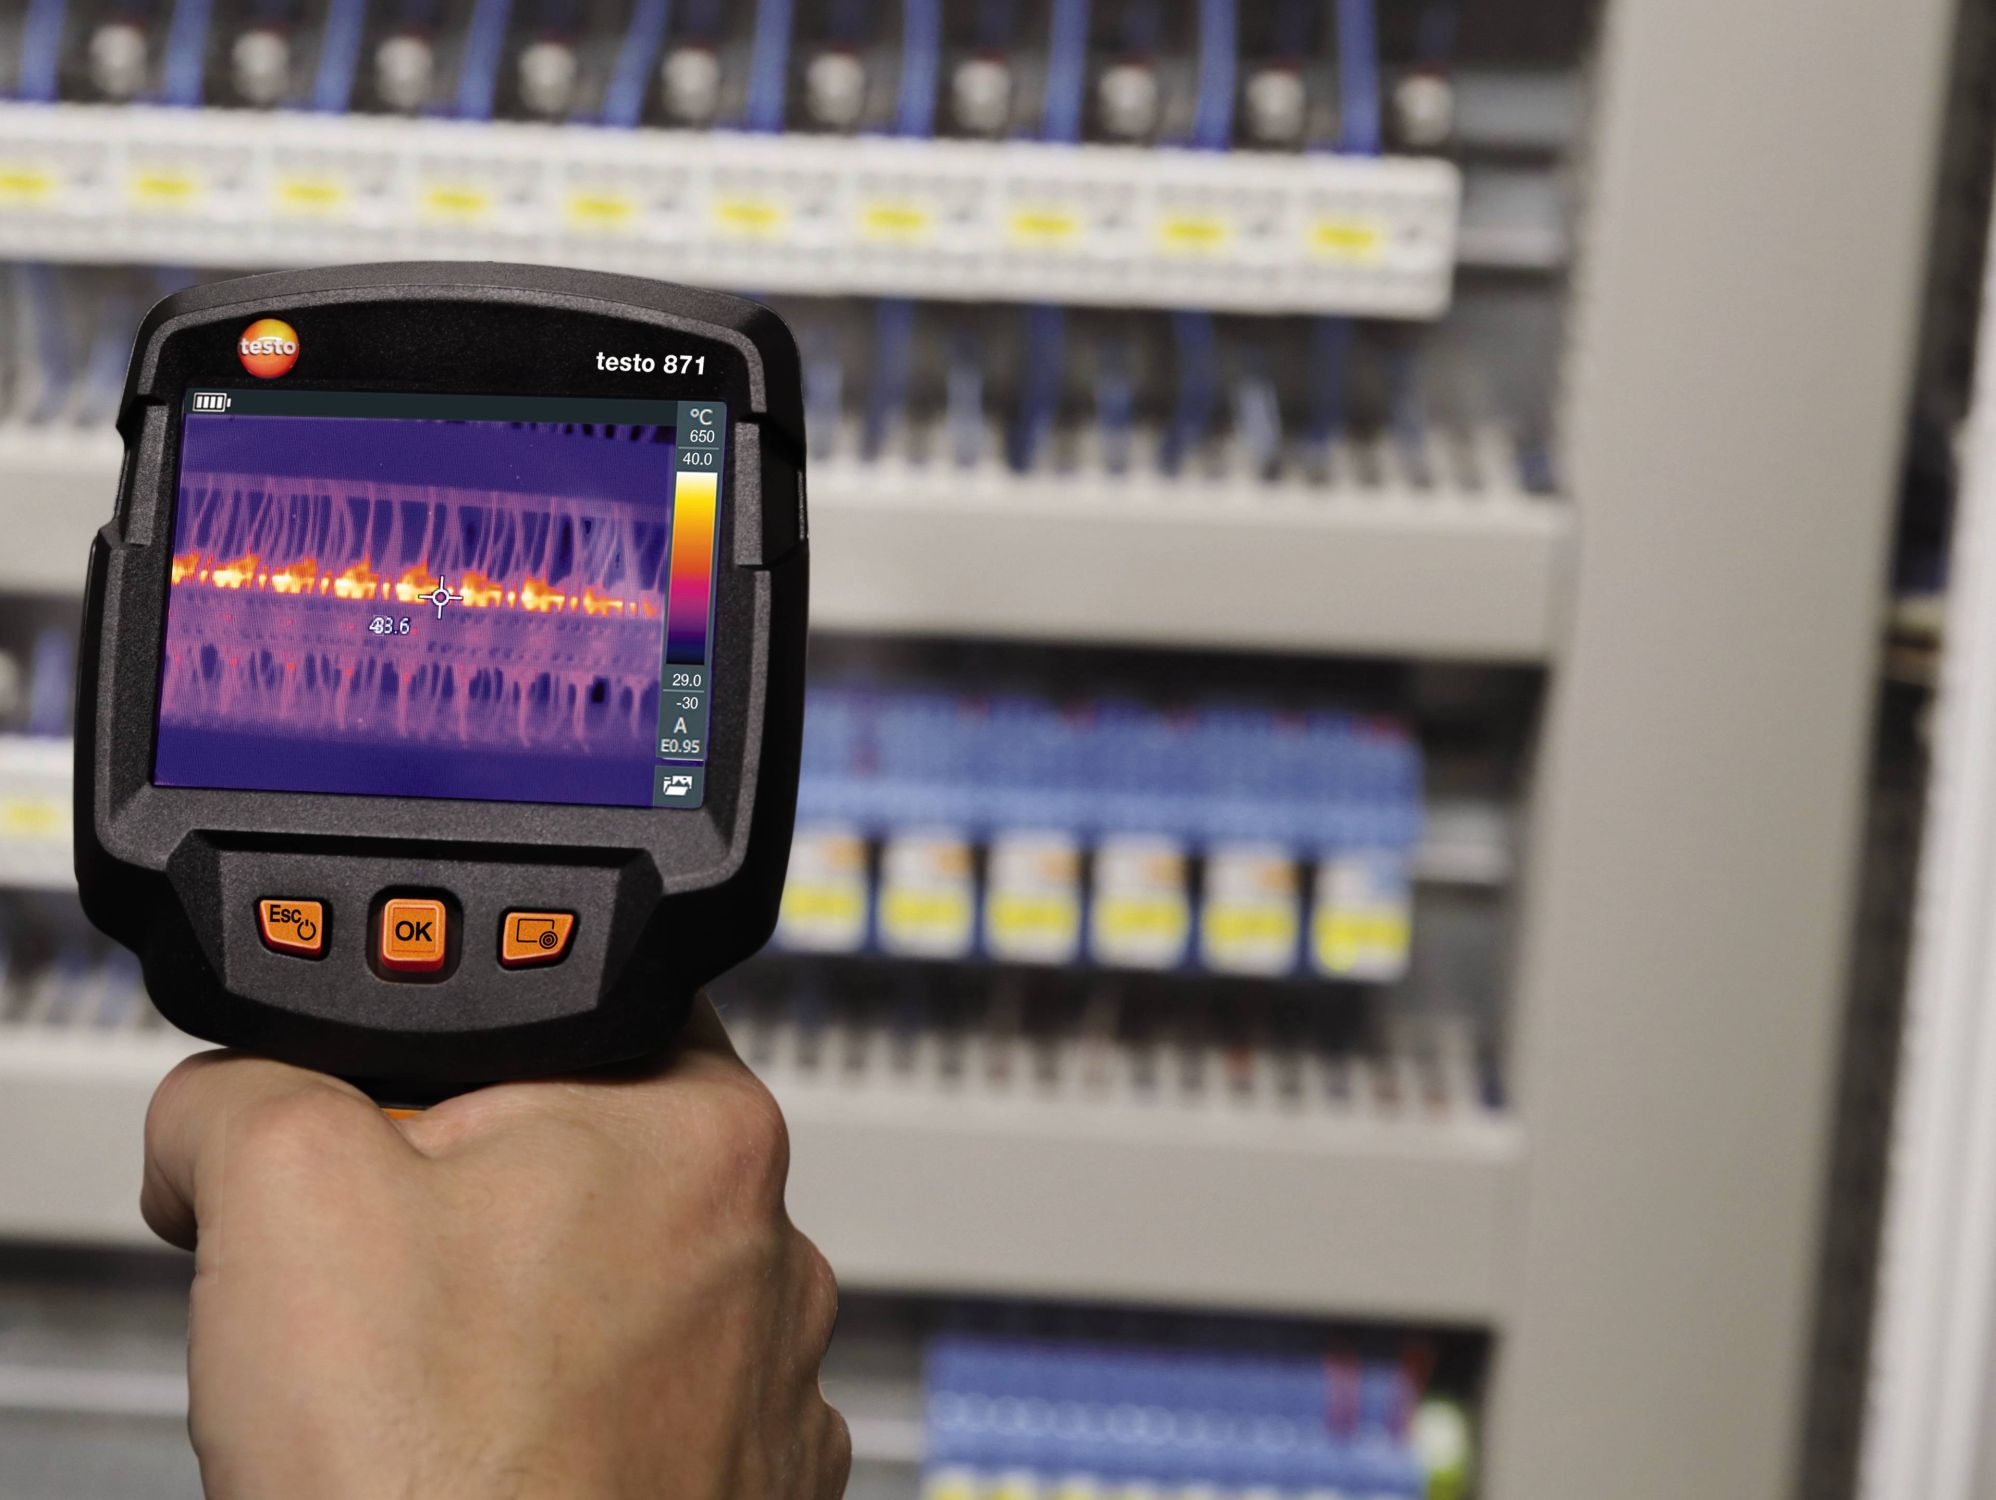 testo871: Smart thermography for professional requirements.